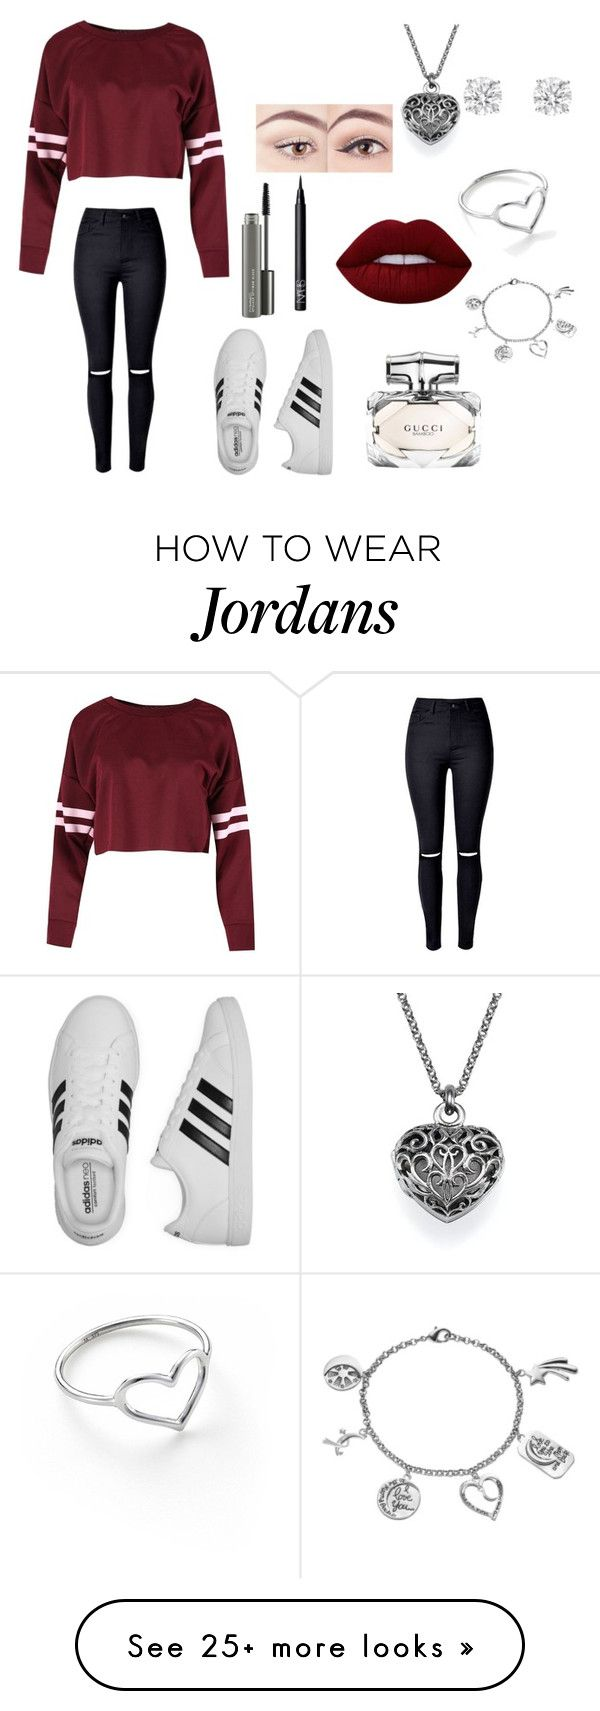 Arriving at beacon hill by npaul6 on Polyvore featuring adidas, NARS Cosmetics, Lime Crime, MAC Cosmetics, Gucci, Jordan Askill, Love This Life and Betteridge